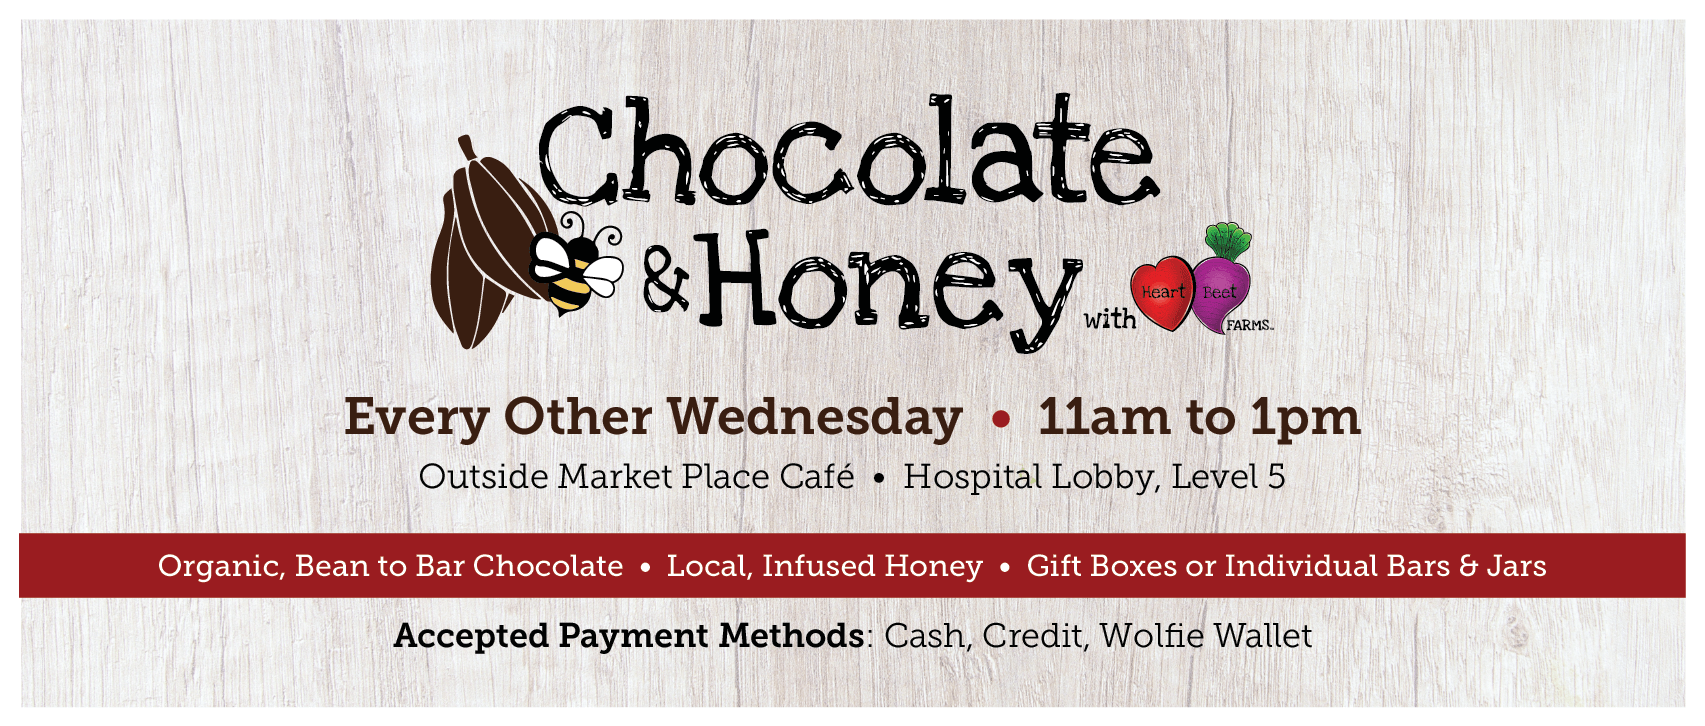 Heartbeet Farms Chocolate and Honey Tasting - Bi-weekly on Wednesday starting October 23 from 11am to 1pm